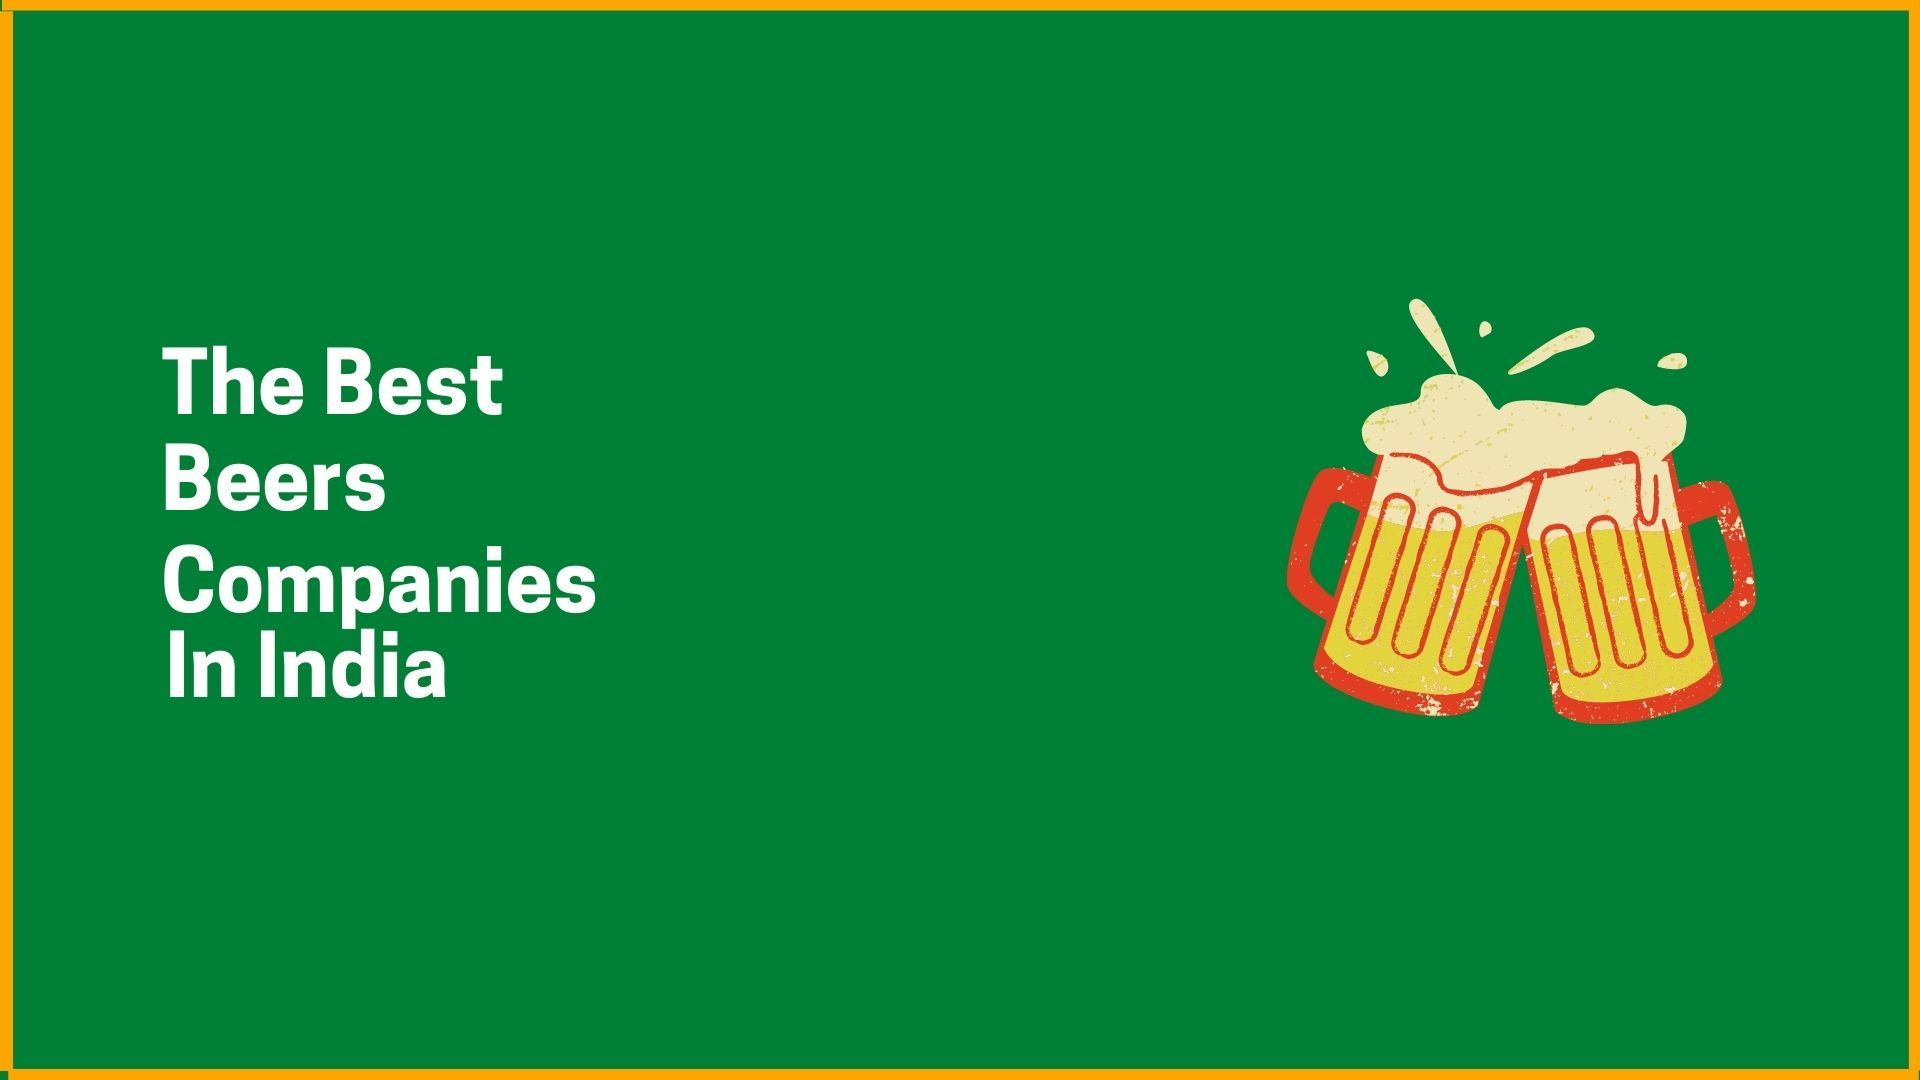 The Best Beers Companies In India